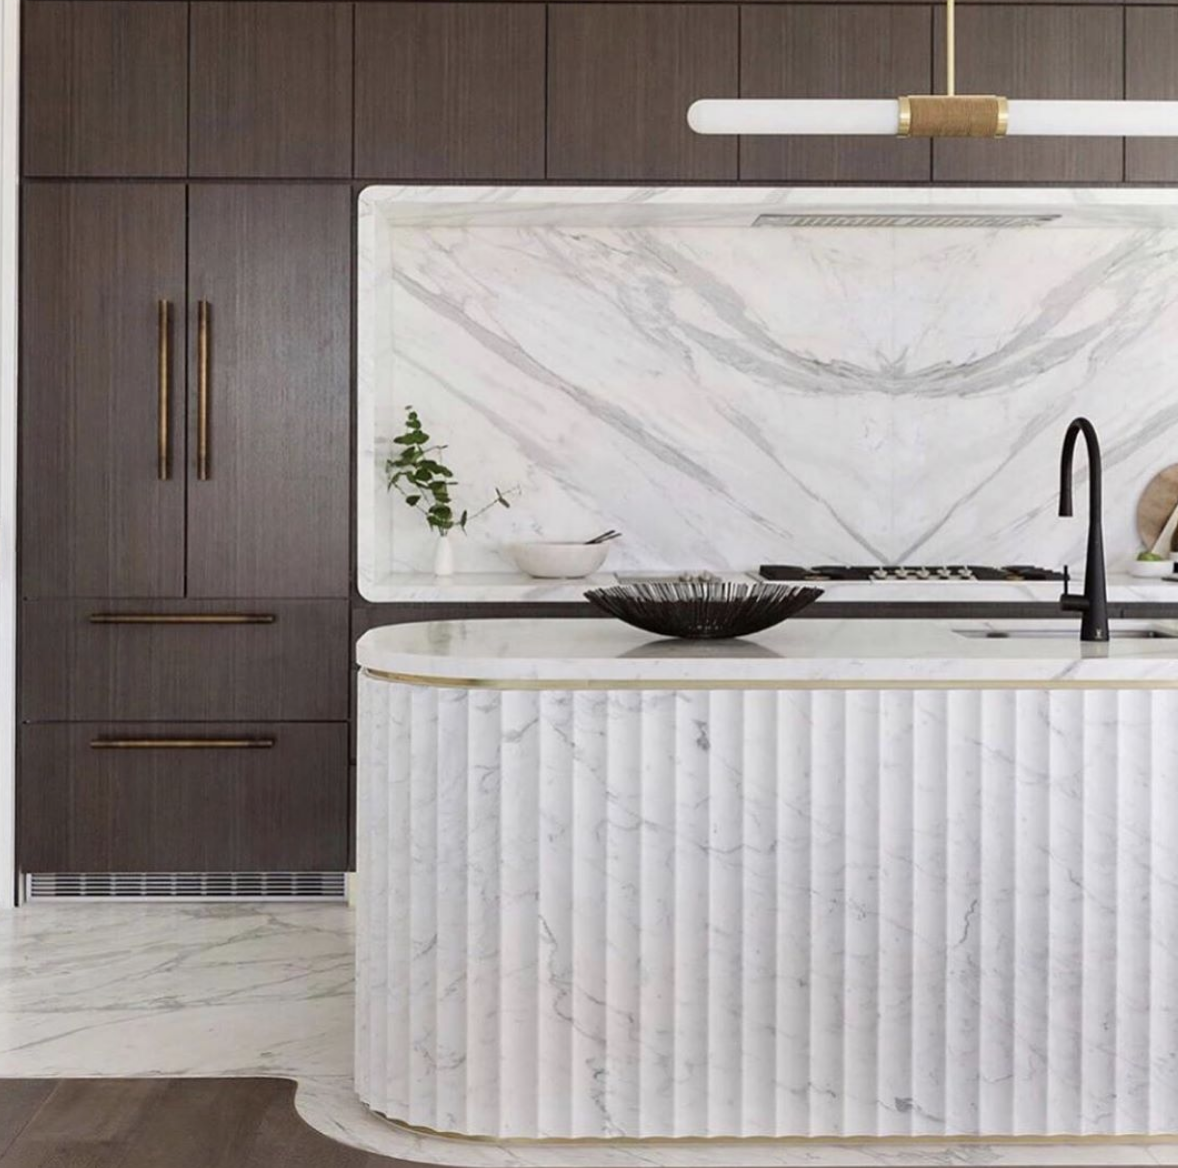 DESIGN | Fluted Walls in 2021 | Curved kitchen island, Art ...